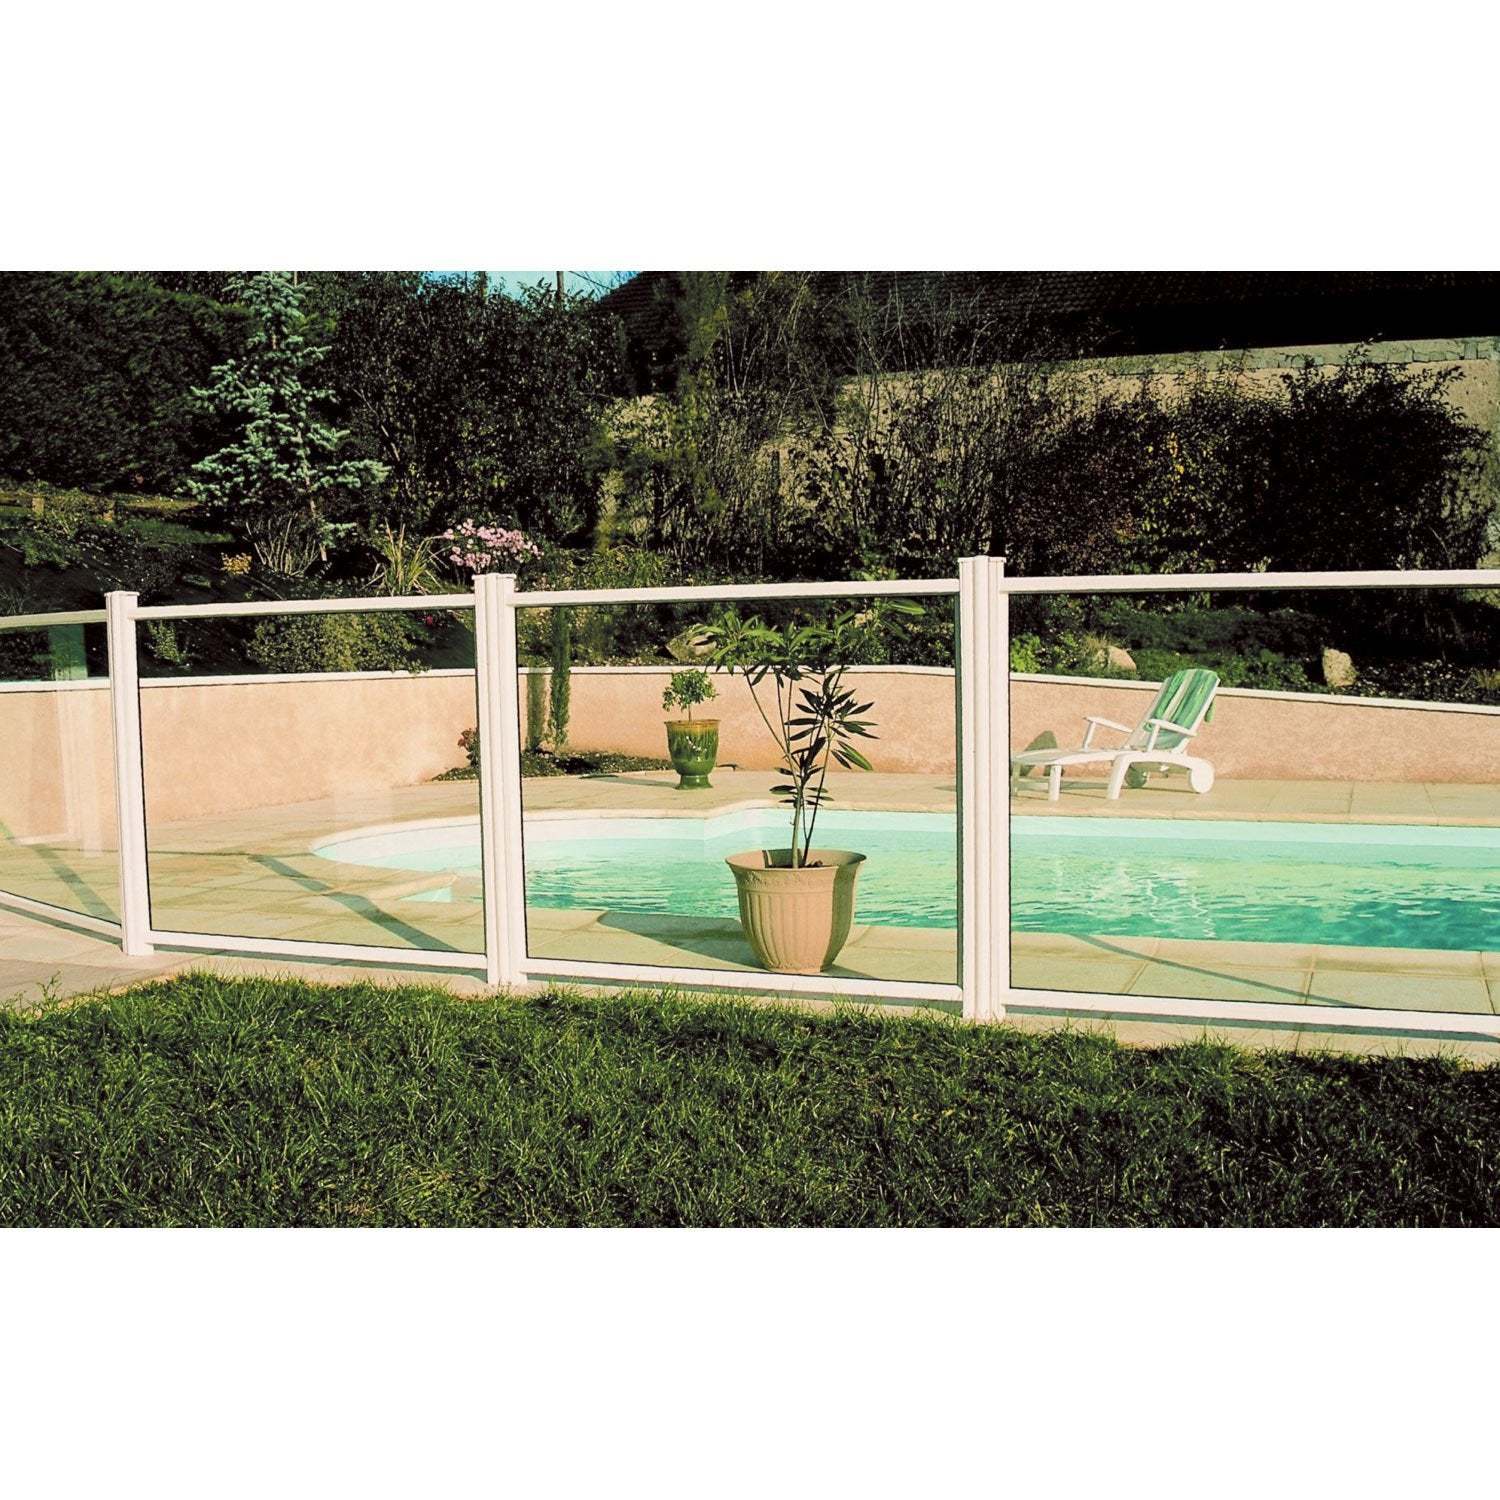 Margelles piscine leroy merlin amazing piscine horssol gonflable easy set intex diam x h with - Piscine gonflable leroy merlin ...